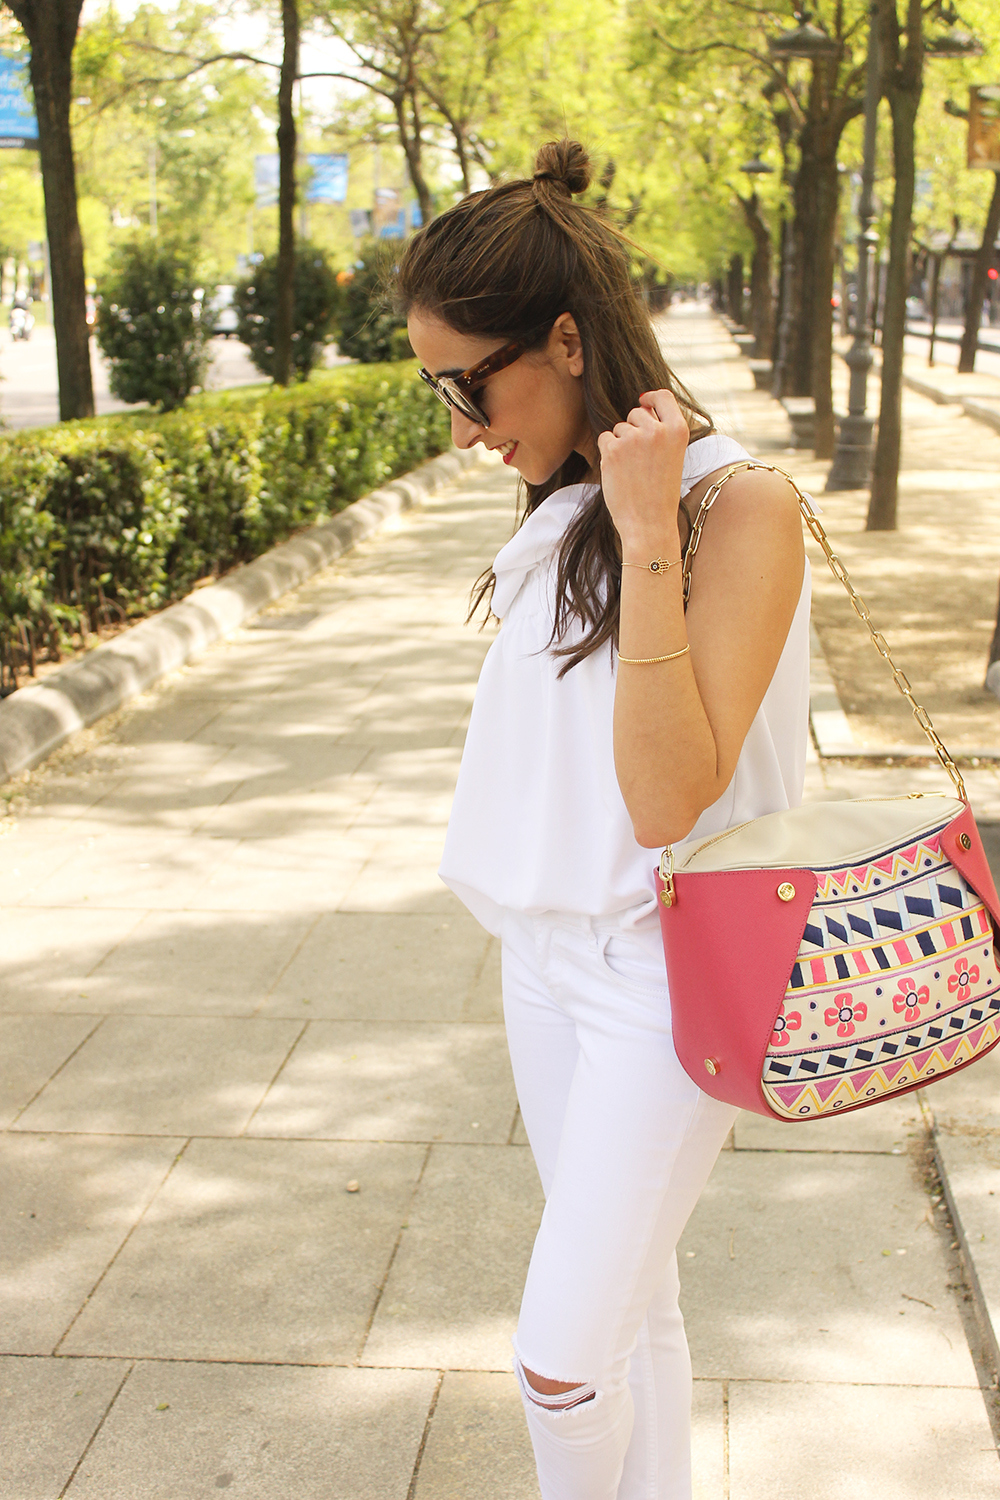 white outfit ripped jeans asymmetrical top pamapamar céline sunnies massimo dutti sandals fashion style08